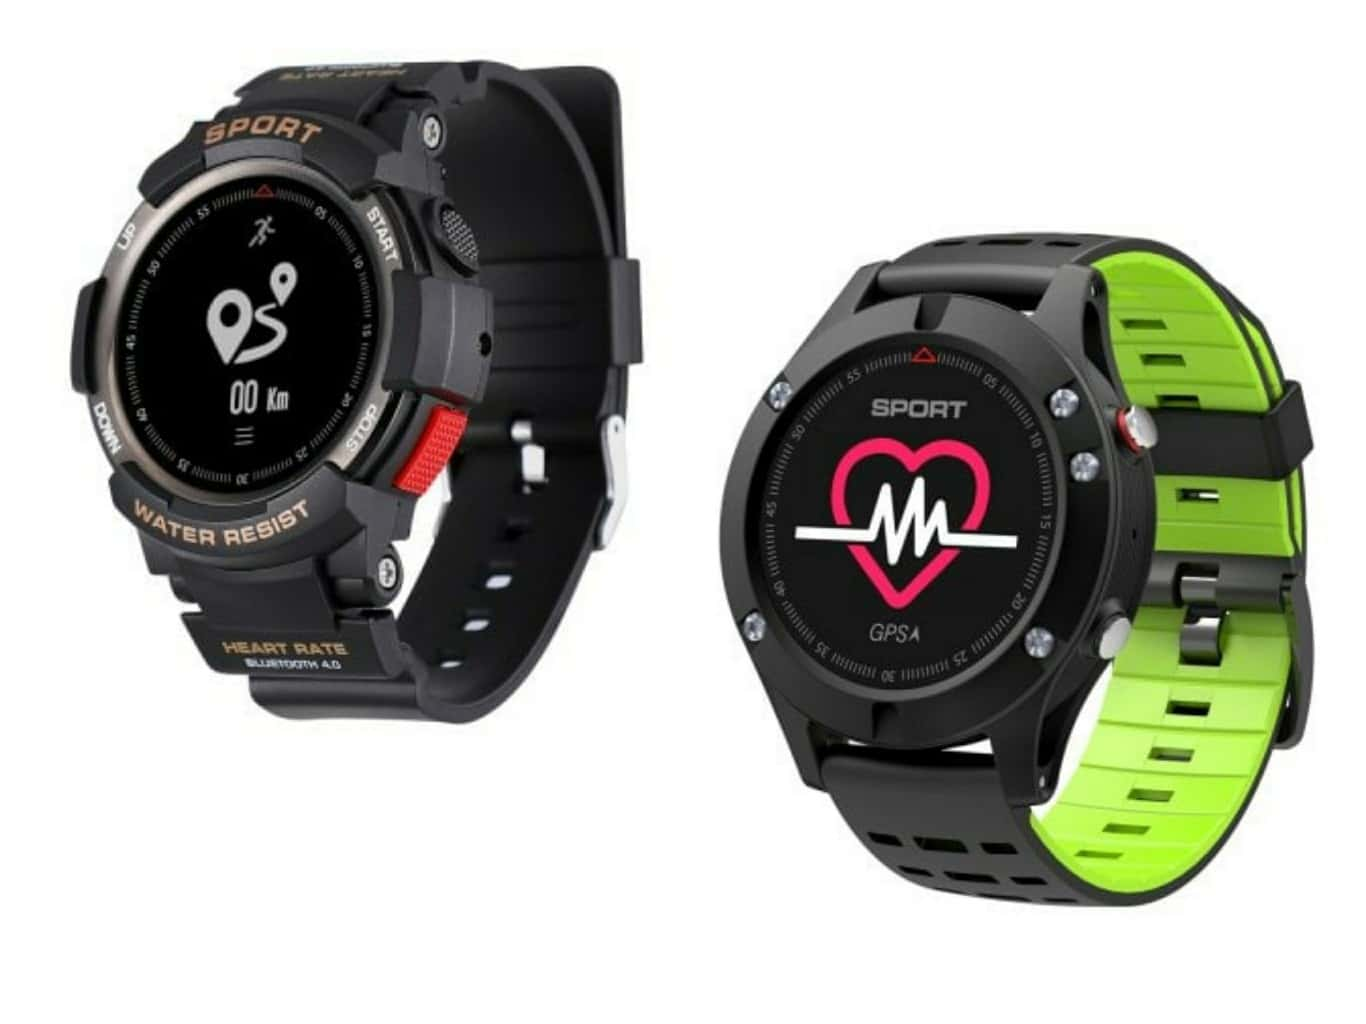 image smartwatches rugged outdoors adventuring focused the outdoor courtesy garmin rug smartwatch for gear best